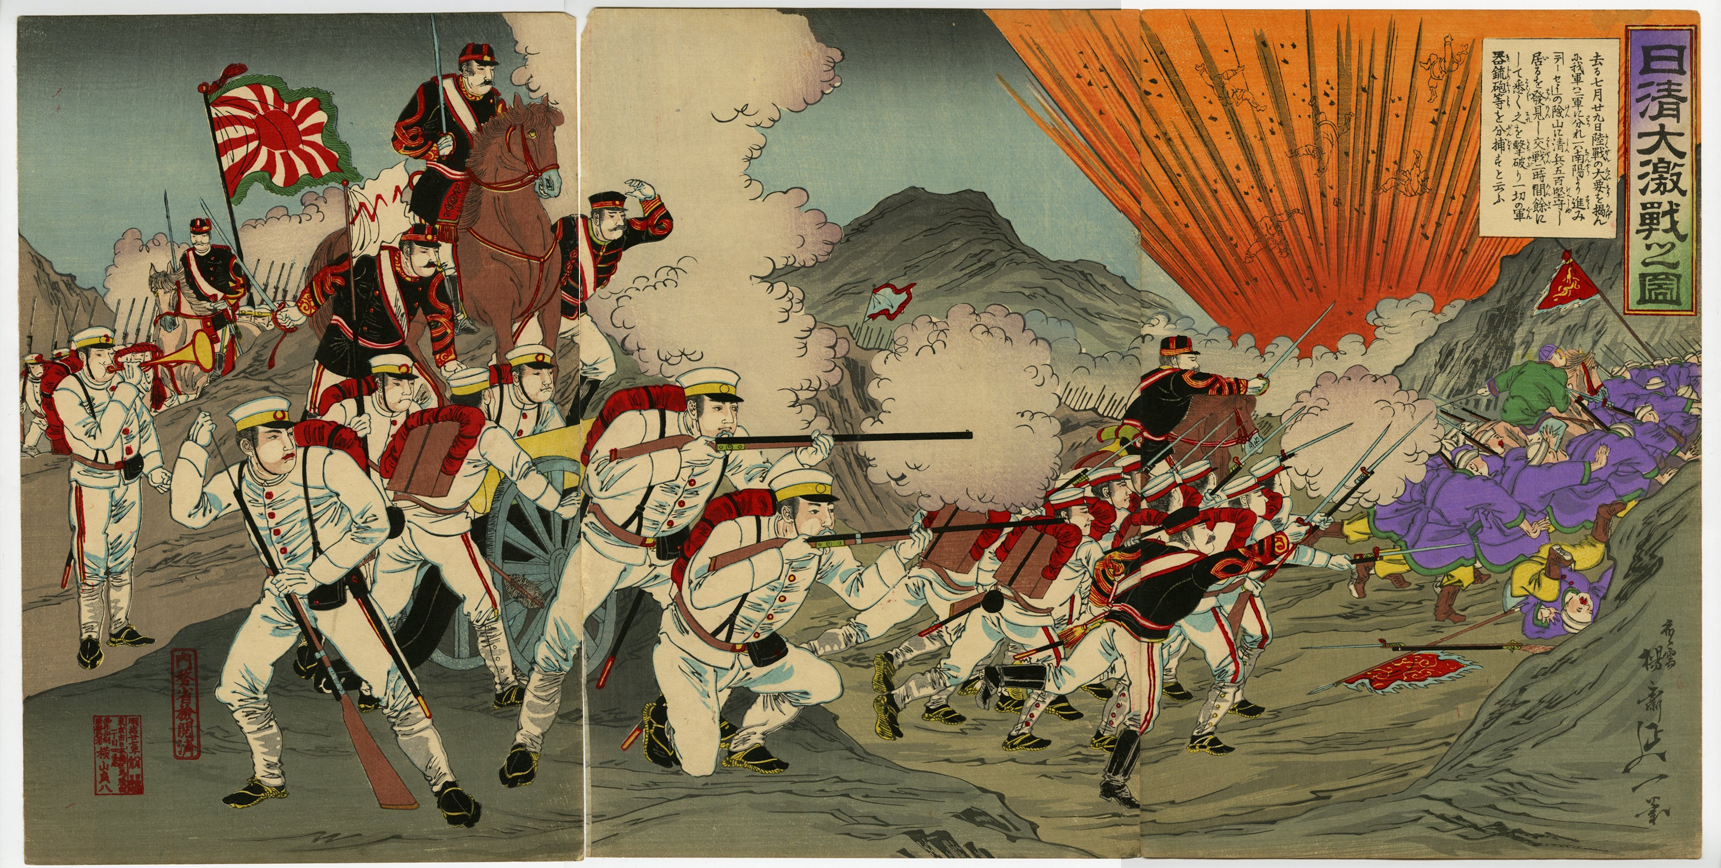 sino japanese war The first sino-japanese war of 1894 and 1895 resulted in the qing dynasty china surrendering control of the korean peninsula to japan's meiji empire.